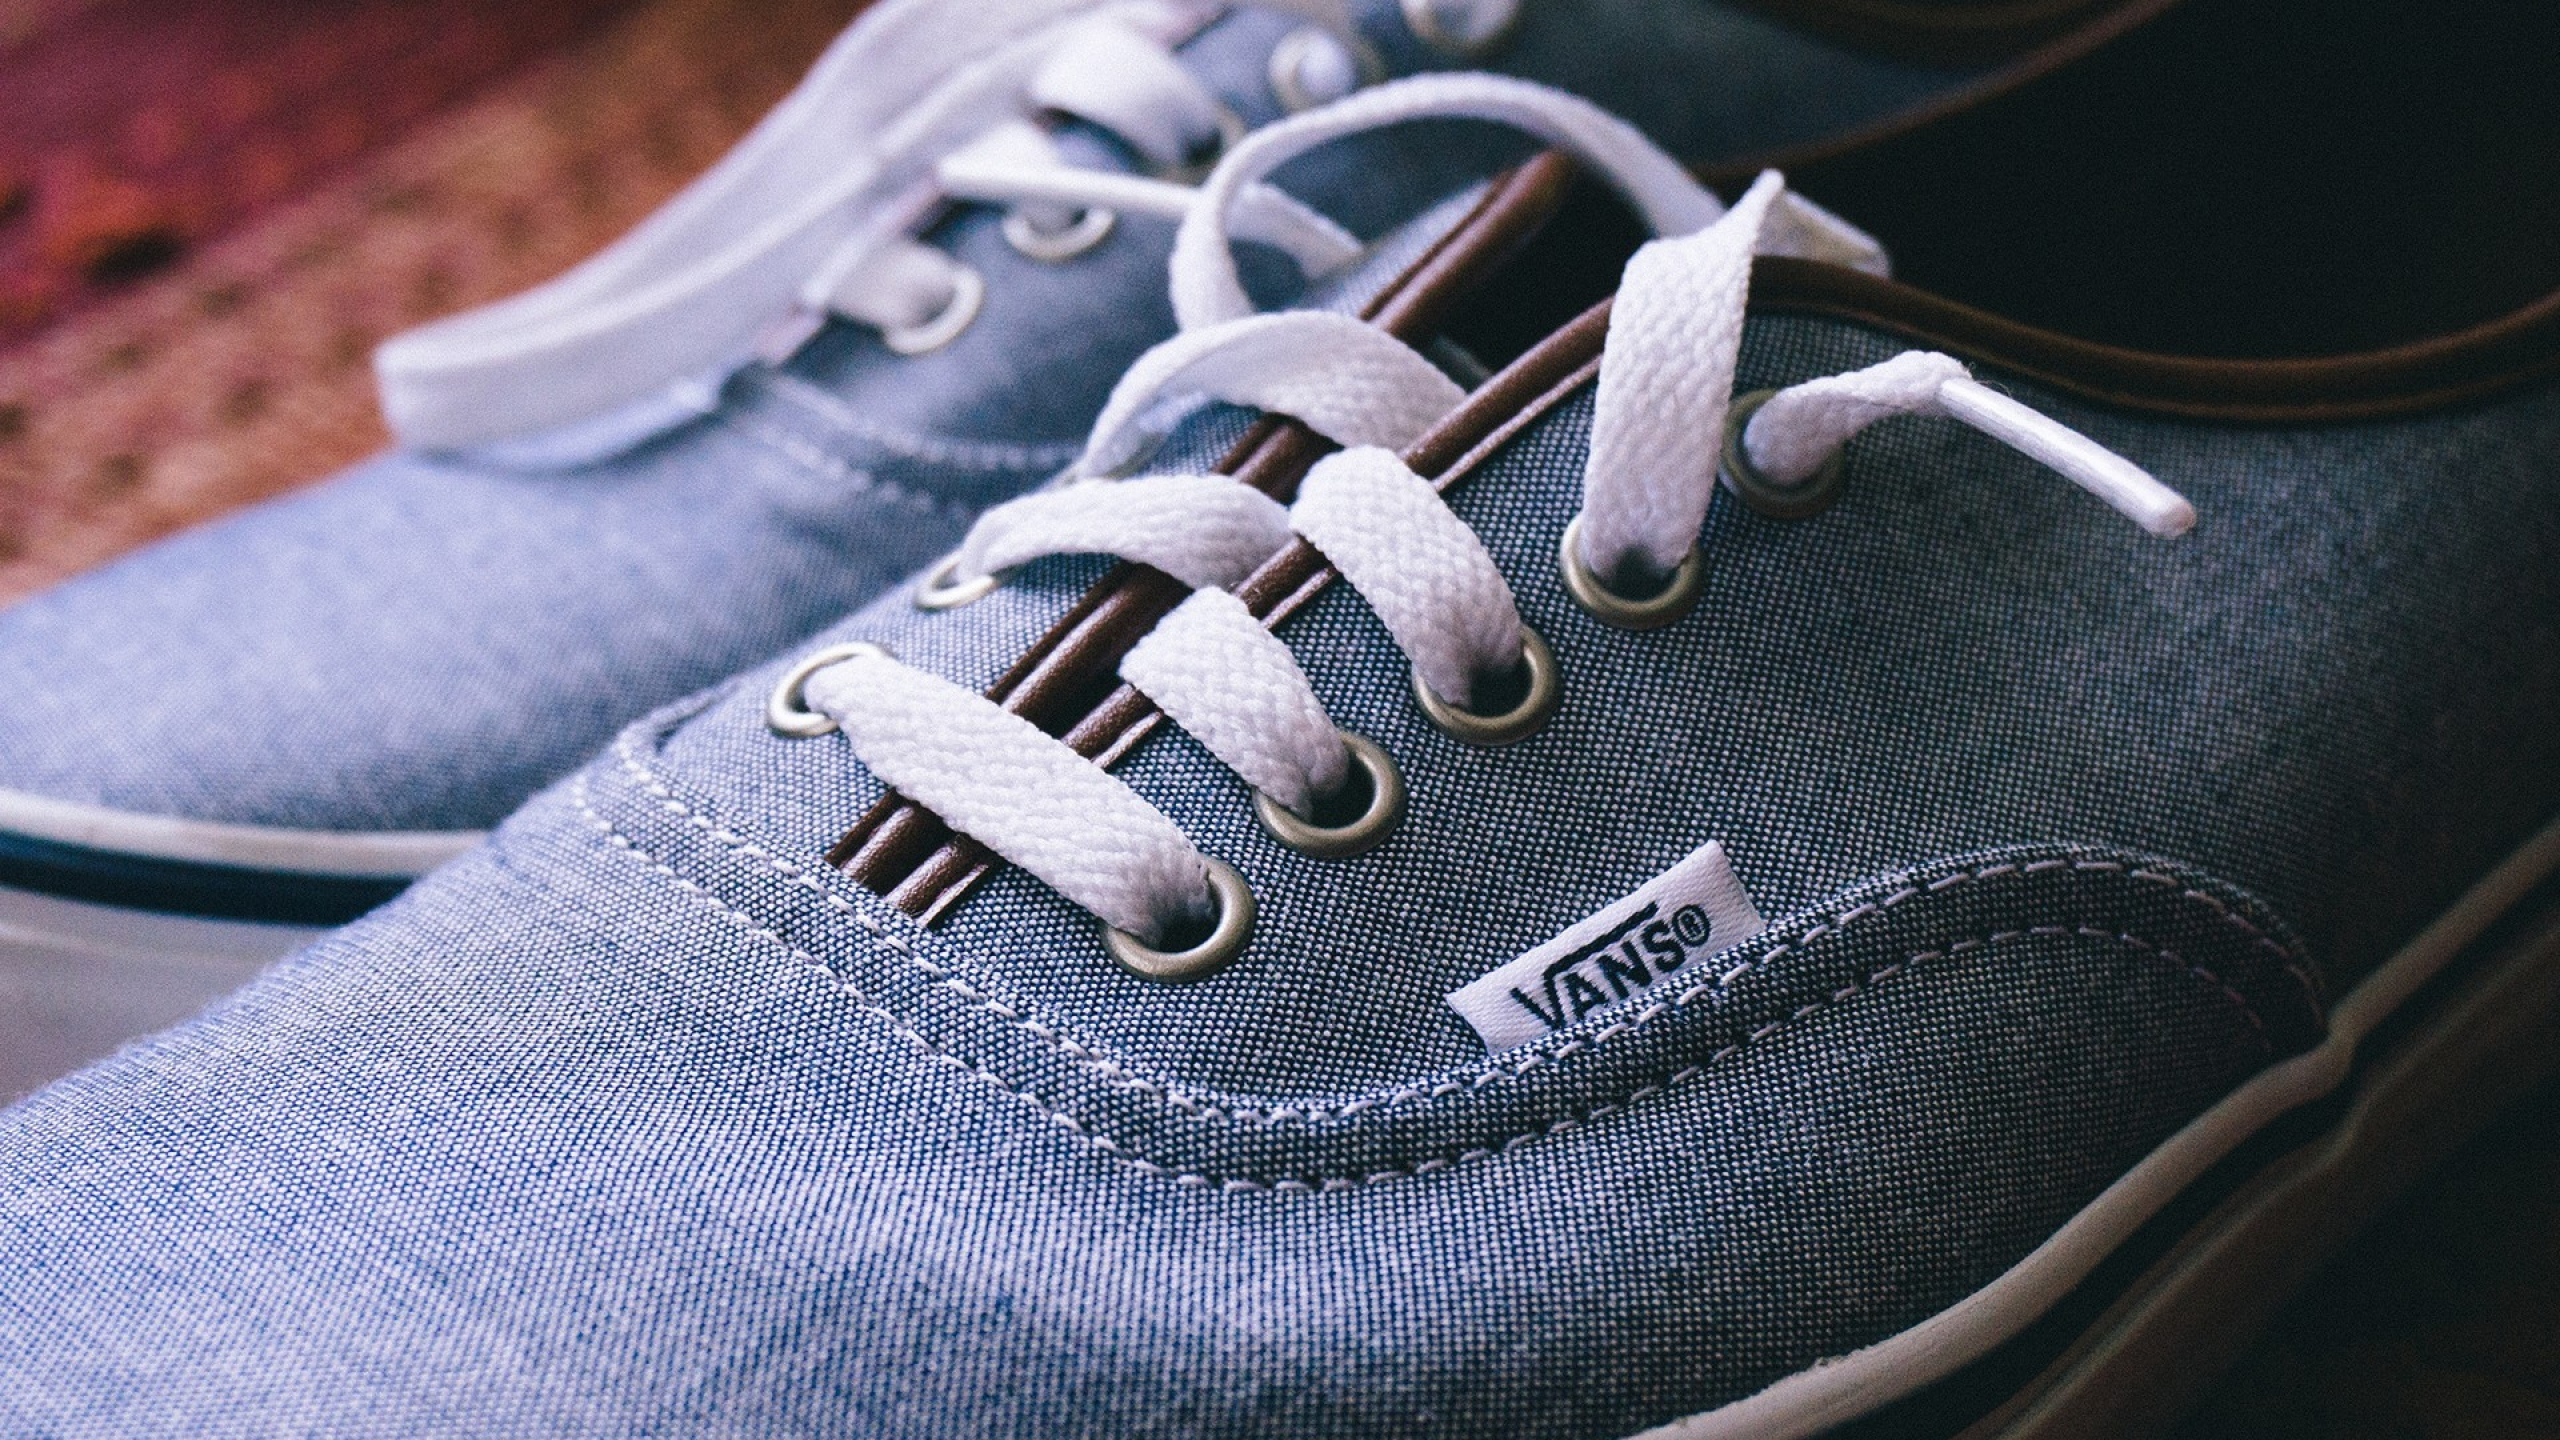 7df92e382ad9 2560x1440 Vans Shoes Sneakers YouTube Channel Cover